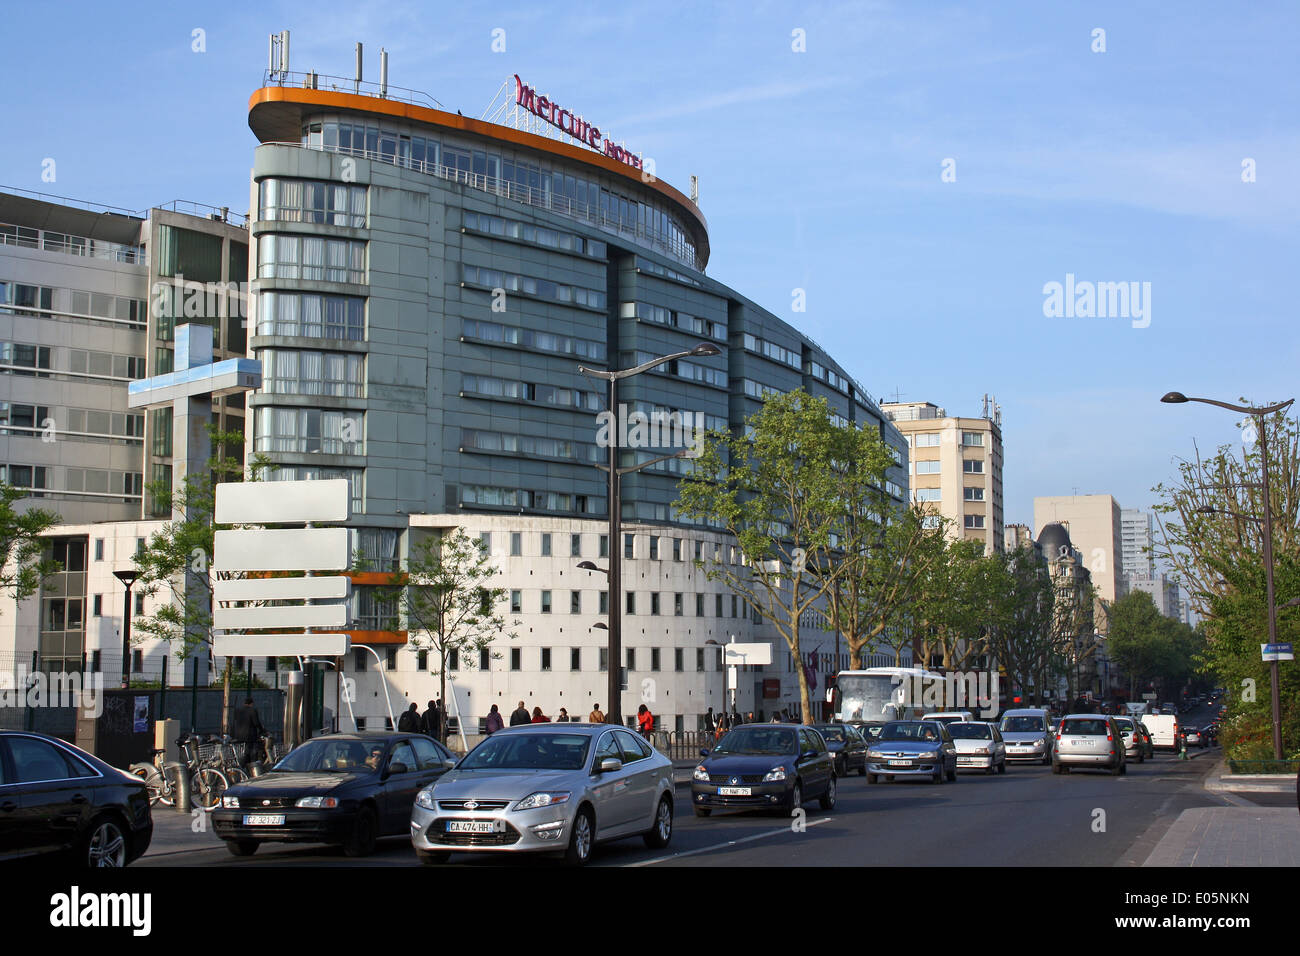 Hotel Mercure Paris Lyon hotel mercure stock photos & hotel mercure stock images - alamy